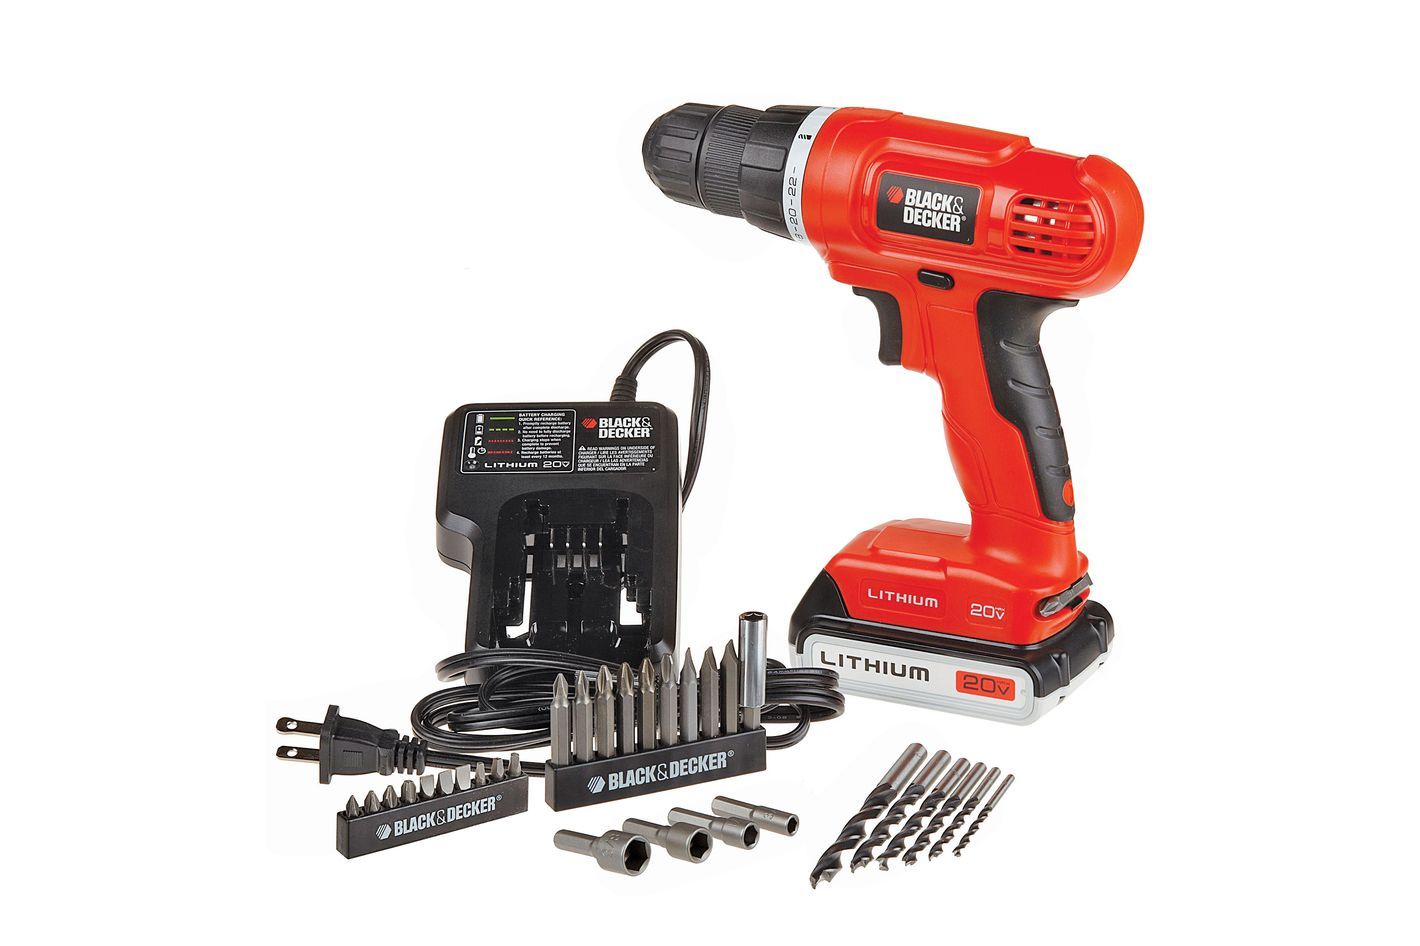 Black & Decker 20-volt-max lithium-ion drill kit